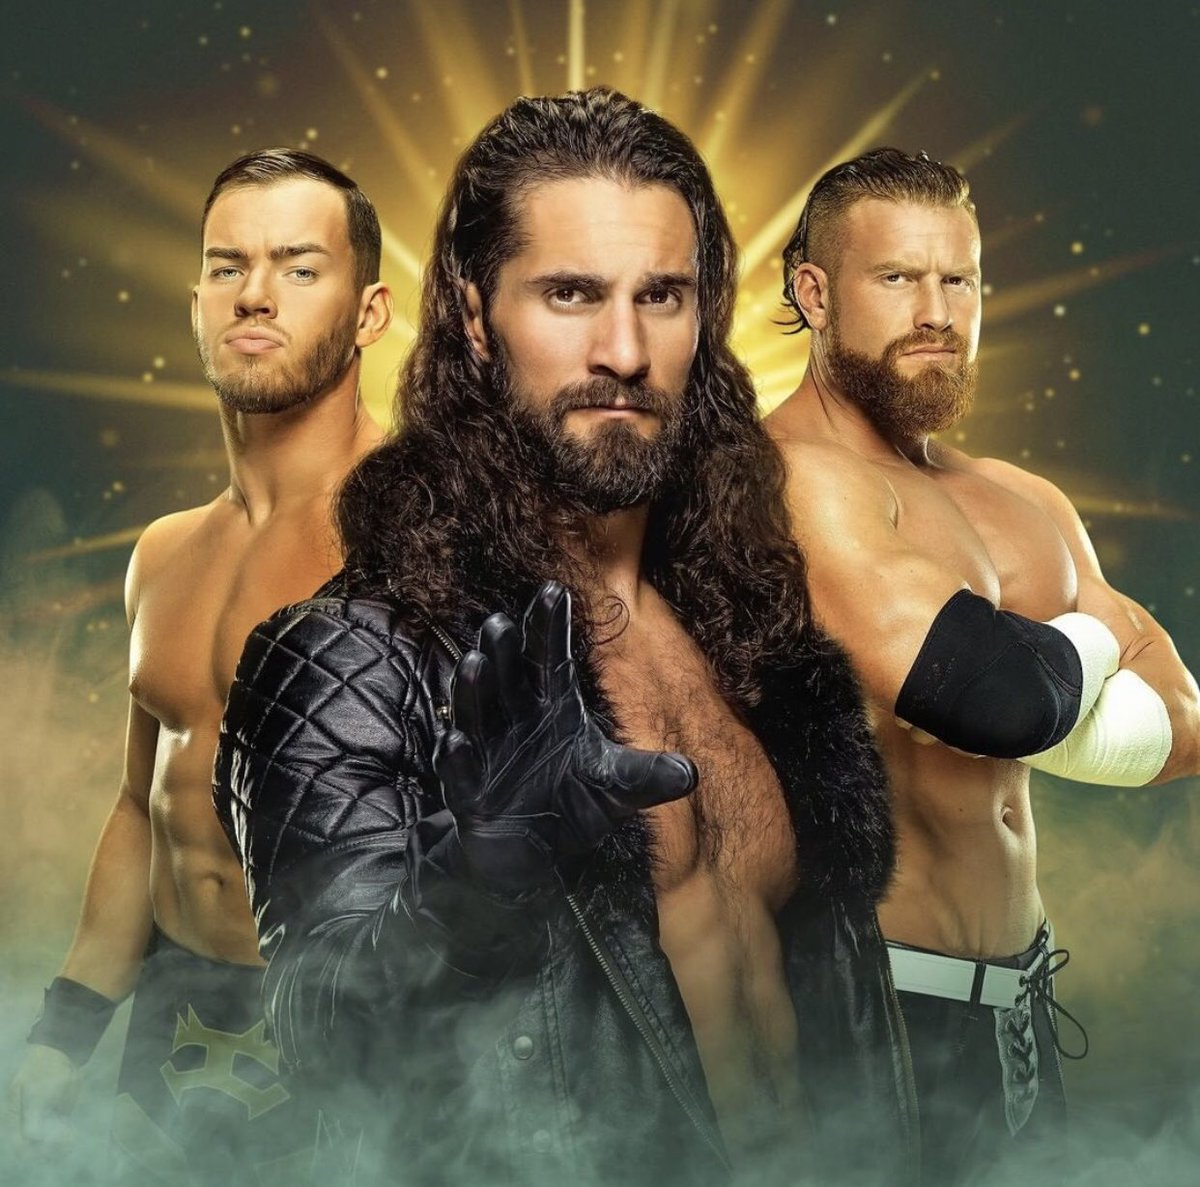 My path is clear now  #mondaynightmessiah #allday #WWERaw  <br>http://pic.twitter.com/HlOQyMNQR9